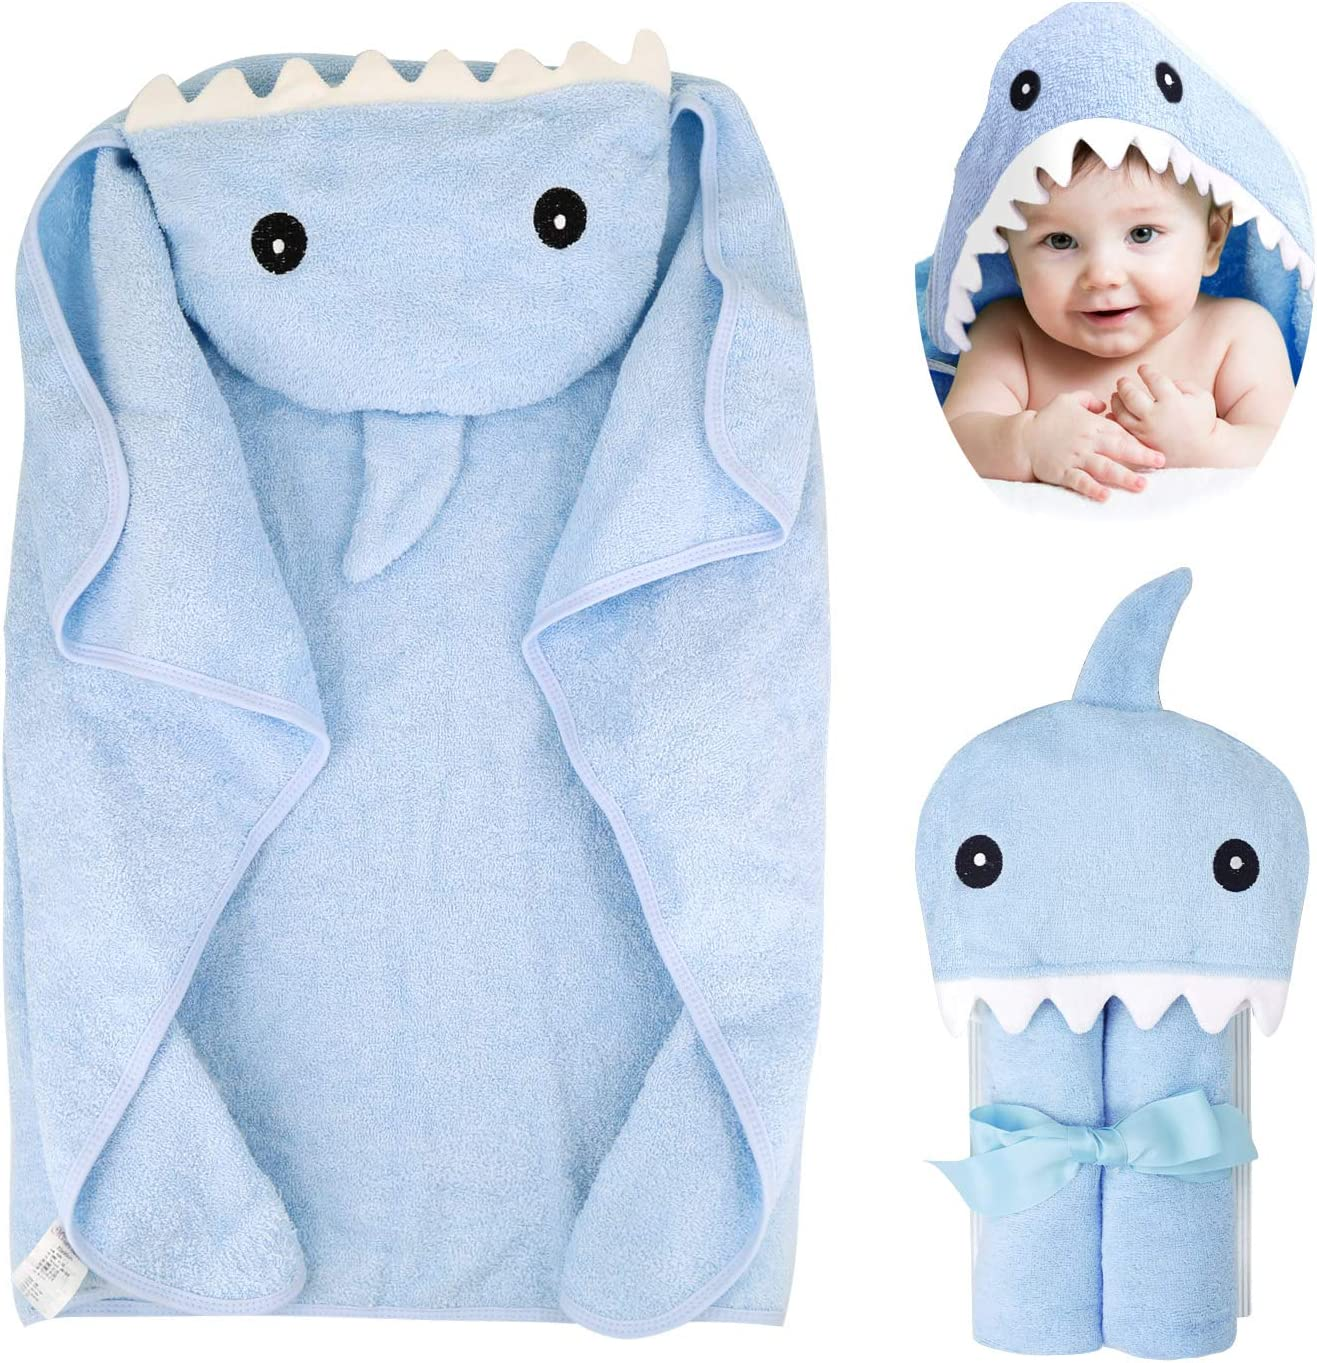 mini eggs Hooded Baby Towel 100% Cotton Toddler Bath Towels with Hood Girl Boy 0-7T Blue